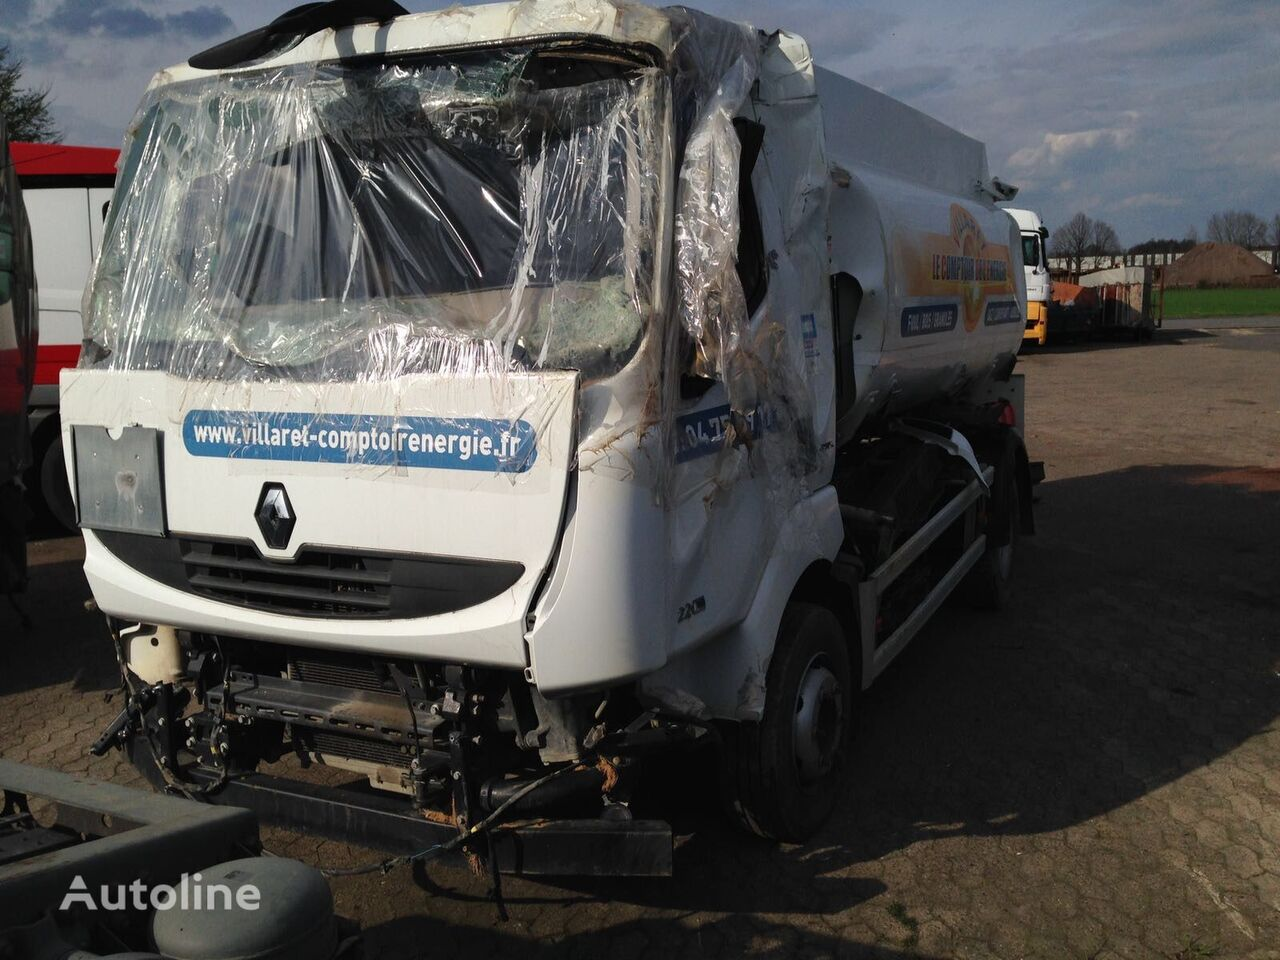 camión de combustible RENAULT MIDLUM 220 DXI después del accidente